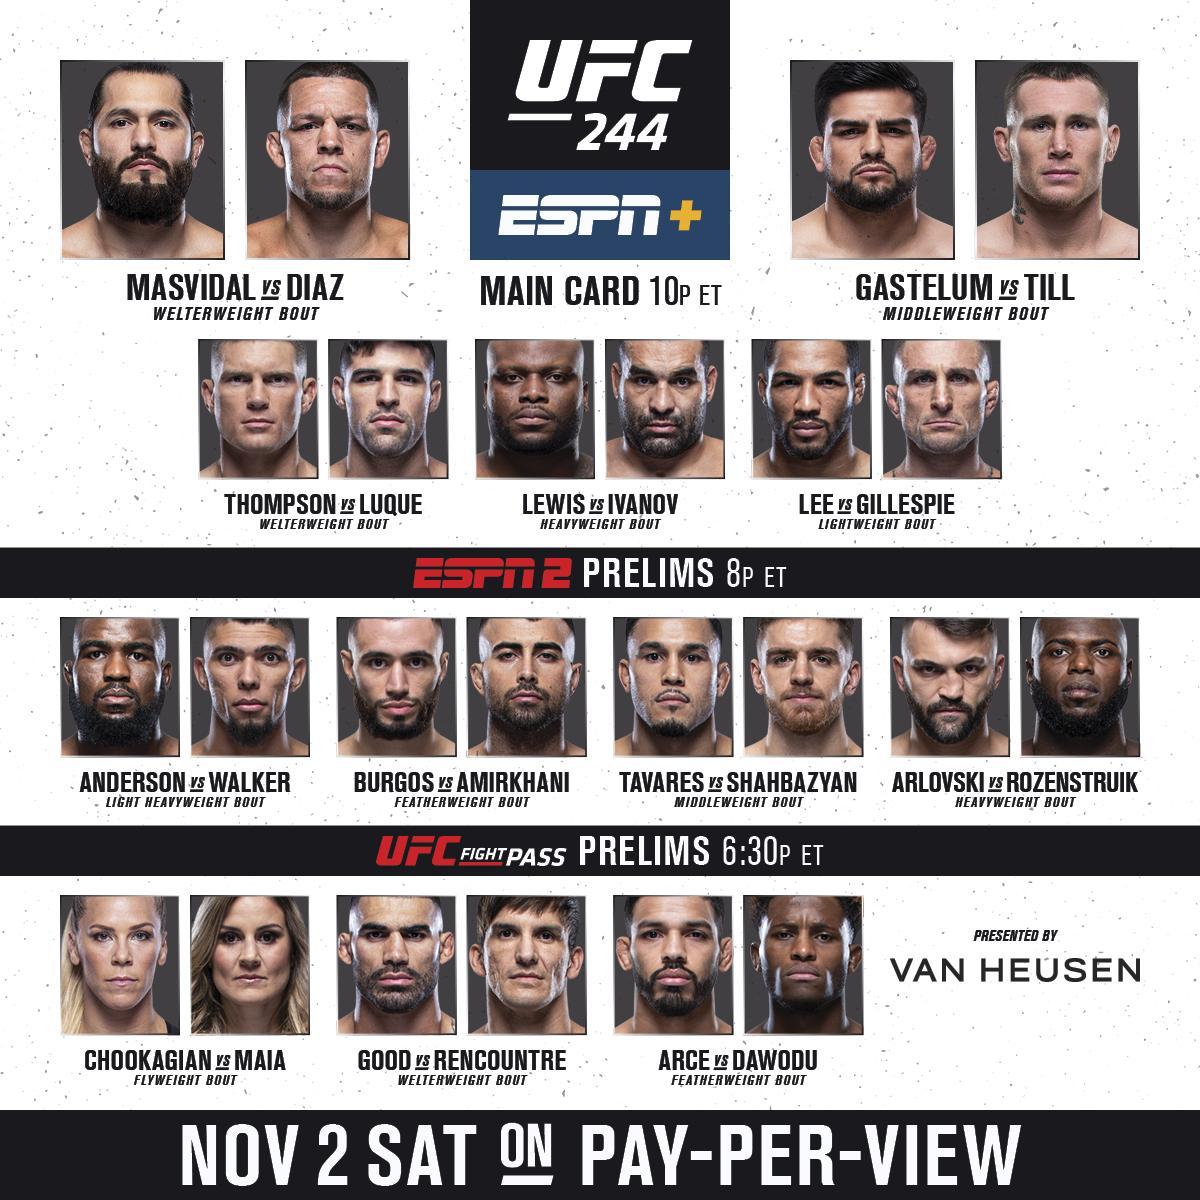 You know what day it is 🤬  🏆 The BMF belt is on the line at the World's Most Famous Arena 🗽  Get the card on PPV ➡️ https://t.co/crgIePx3AK (B2YB @VanHeusen) #UFC244 https://t.co/y0hzhD8y4n